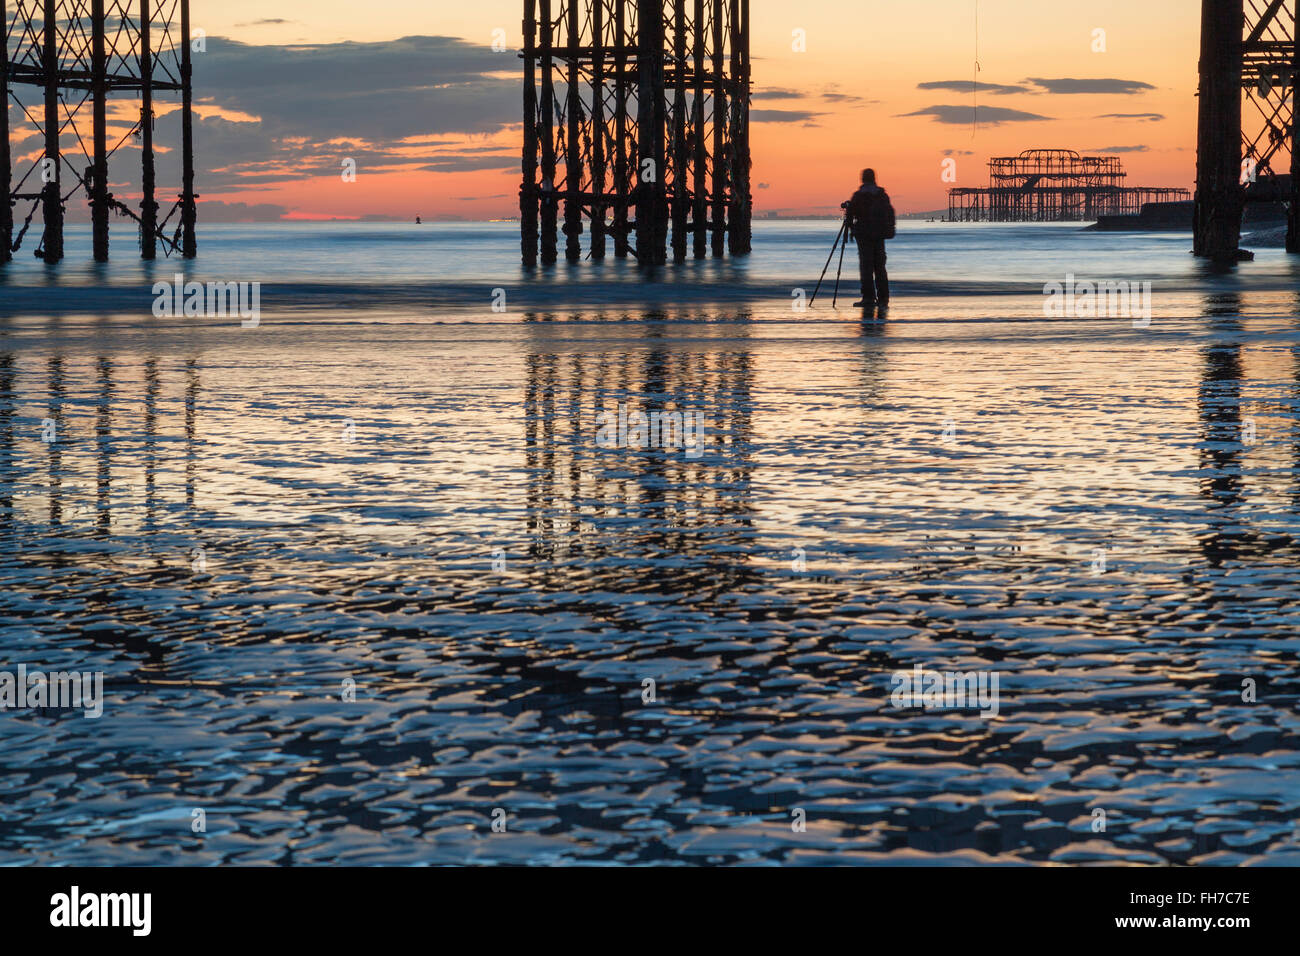 Evening on Brighton beach at low tide, UK. - Stock Image